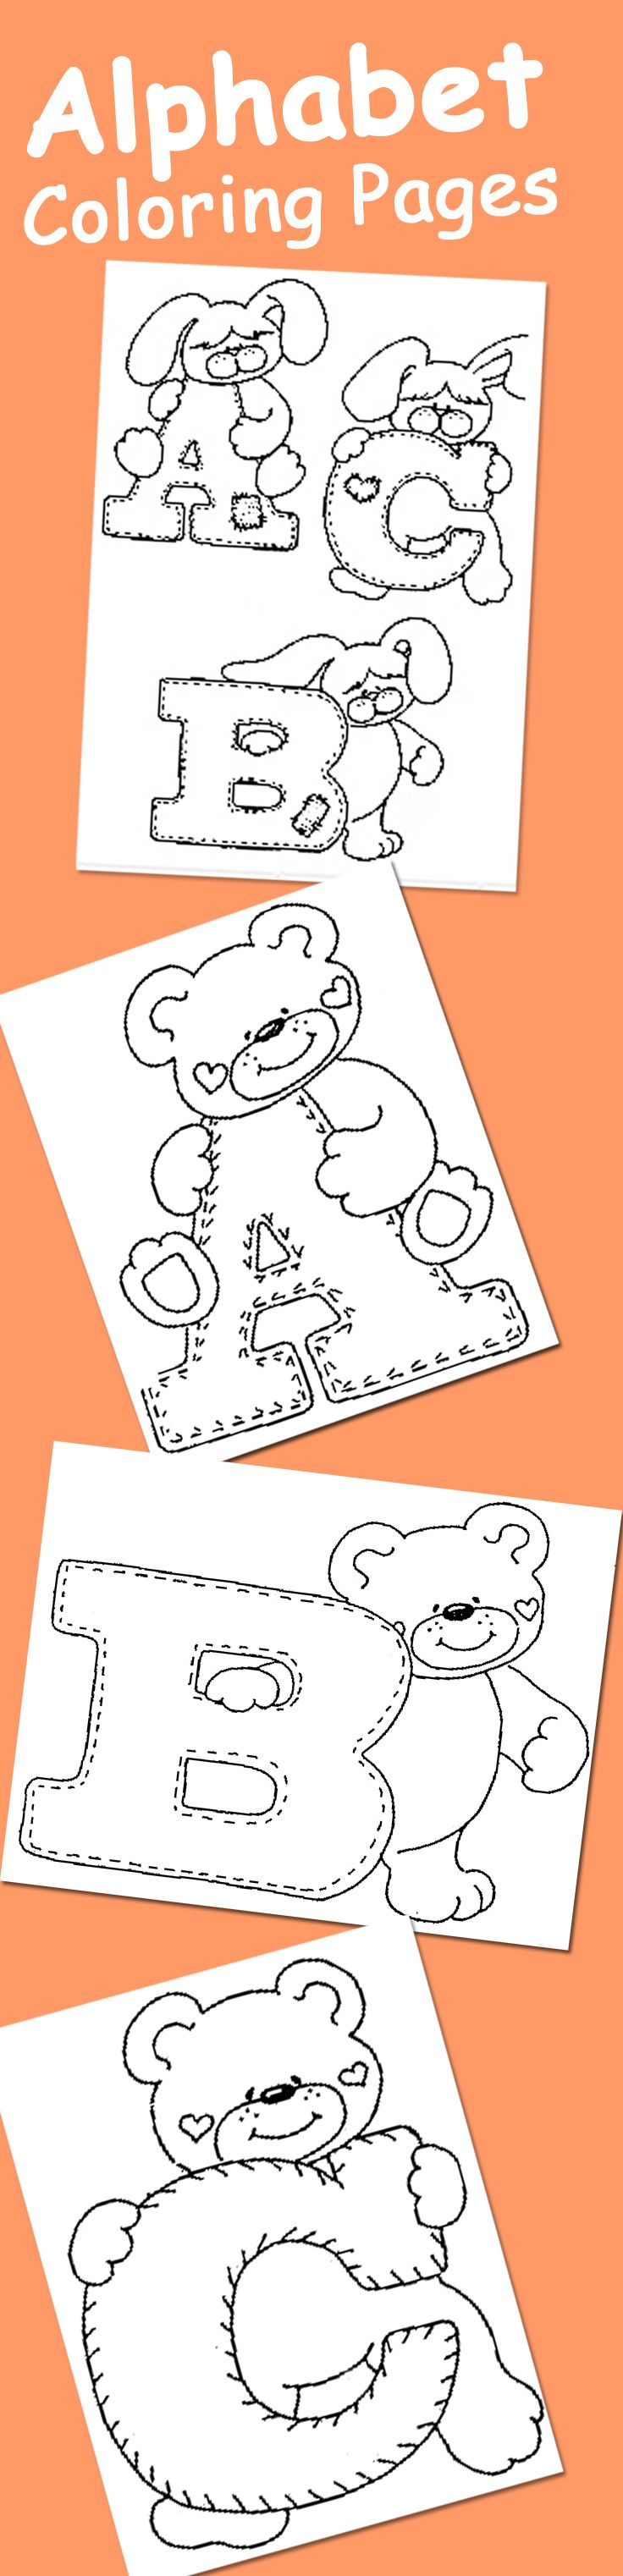 25 Alphabet Coloring Pages Your Toddler Will Love Here Are Our Pick Of Top 10 Sheets That Make ABC Childs Best Friends